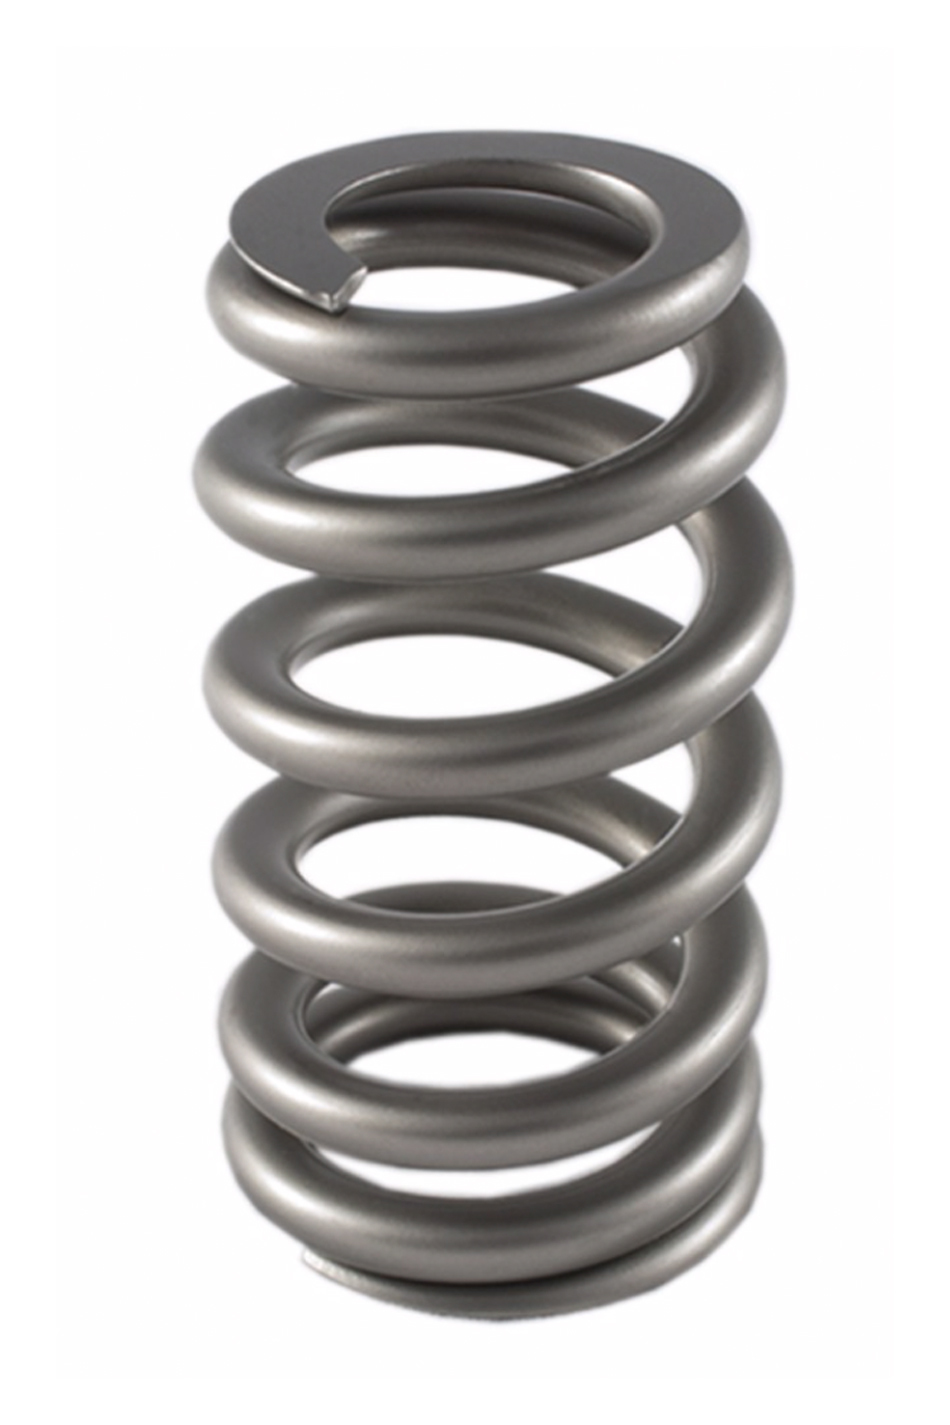 PAC Racing Springs PAC-1234X Valve Spring, RPM Series, Dual Spring, 240 lb/in Spring Rate, 0.941 in Coil Bind, 1.021 in OD, Ford Coyote, Set of 16